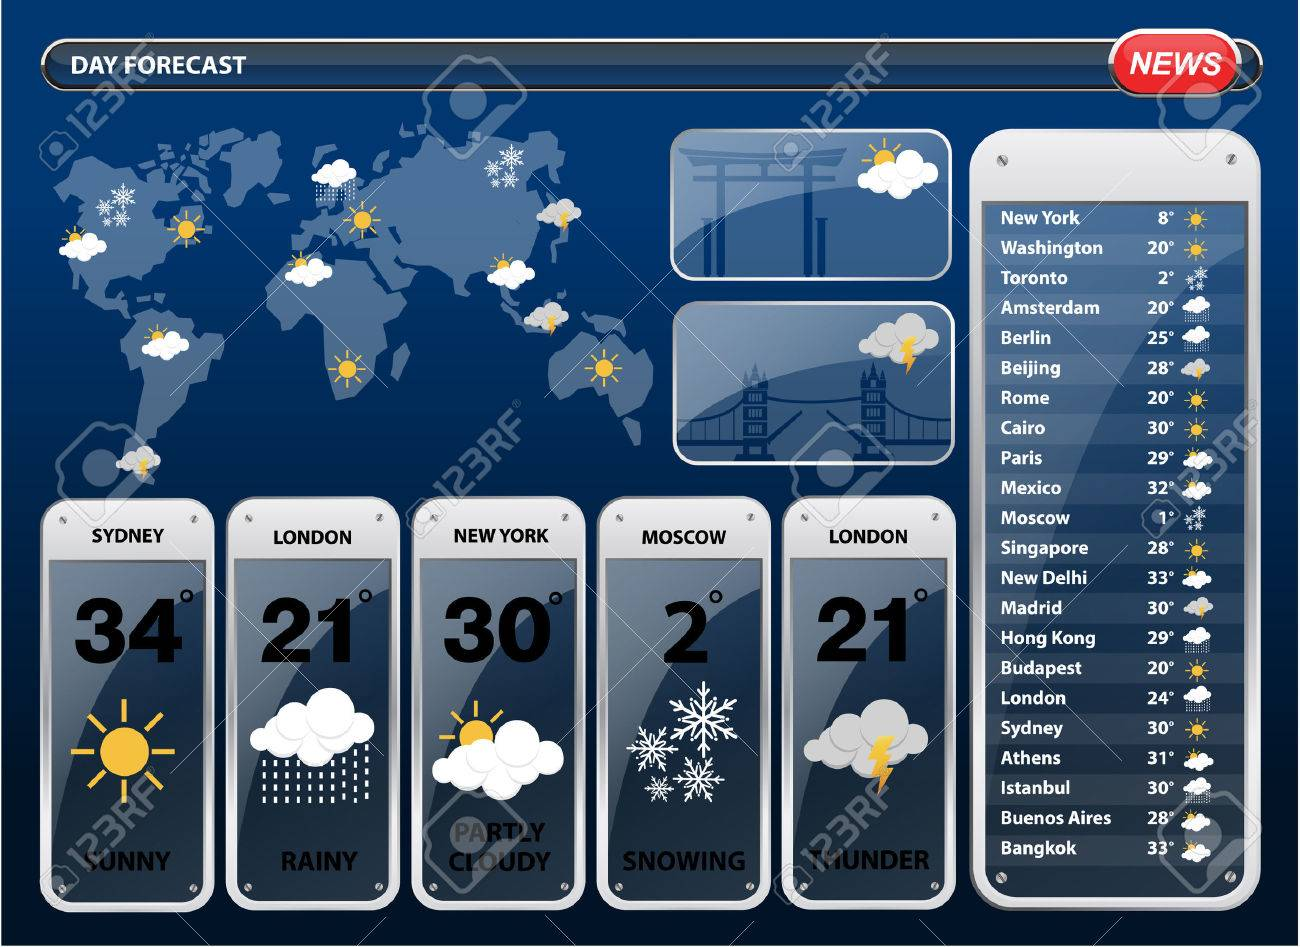 Weather Forecast Widgets Template With World Map. Royalty Free ...